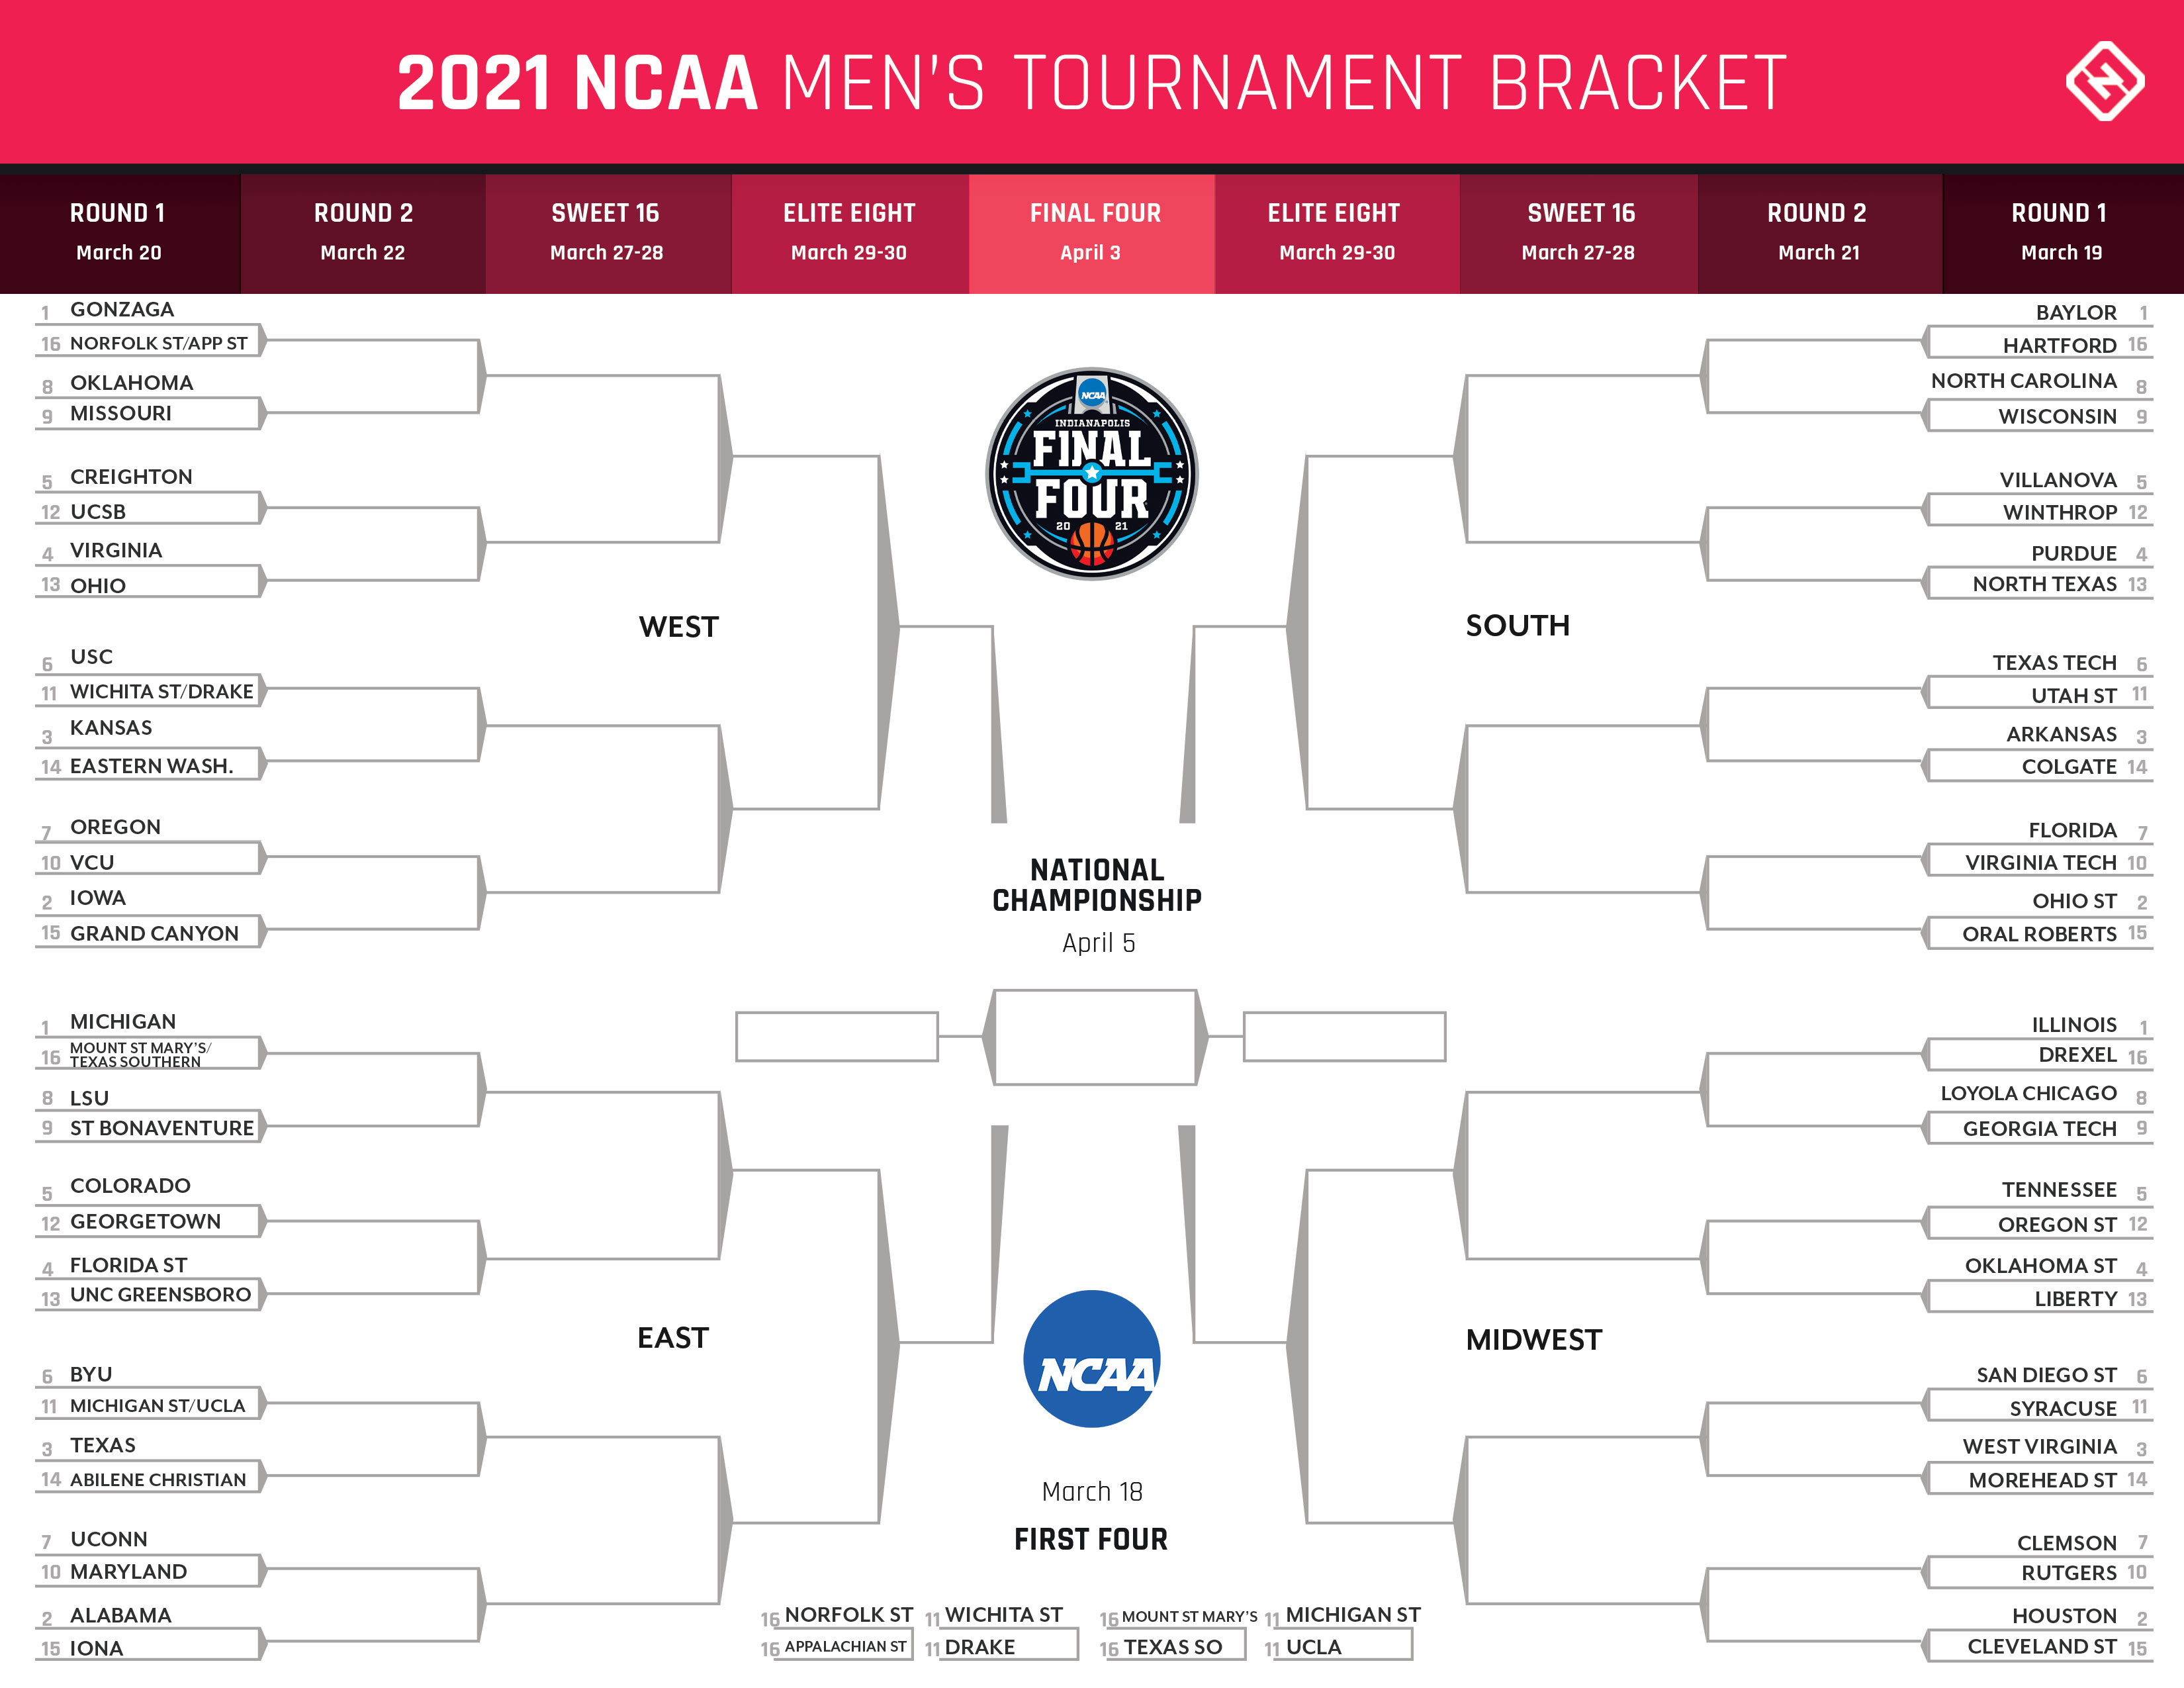 March Madness 2021: Dates, TV schedule, how to watch Men's NCAA Tournament in Canada